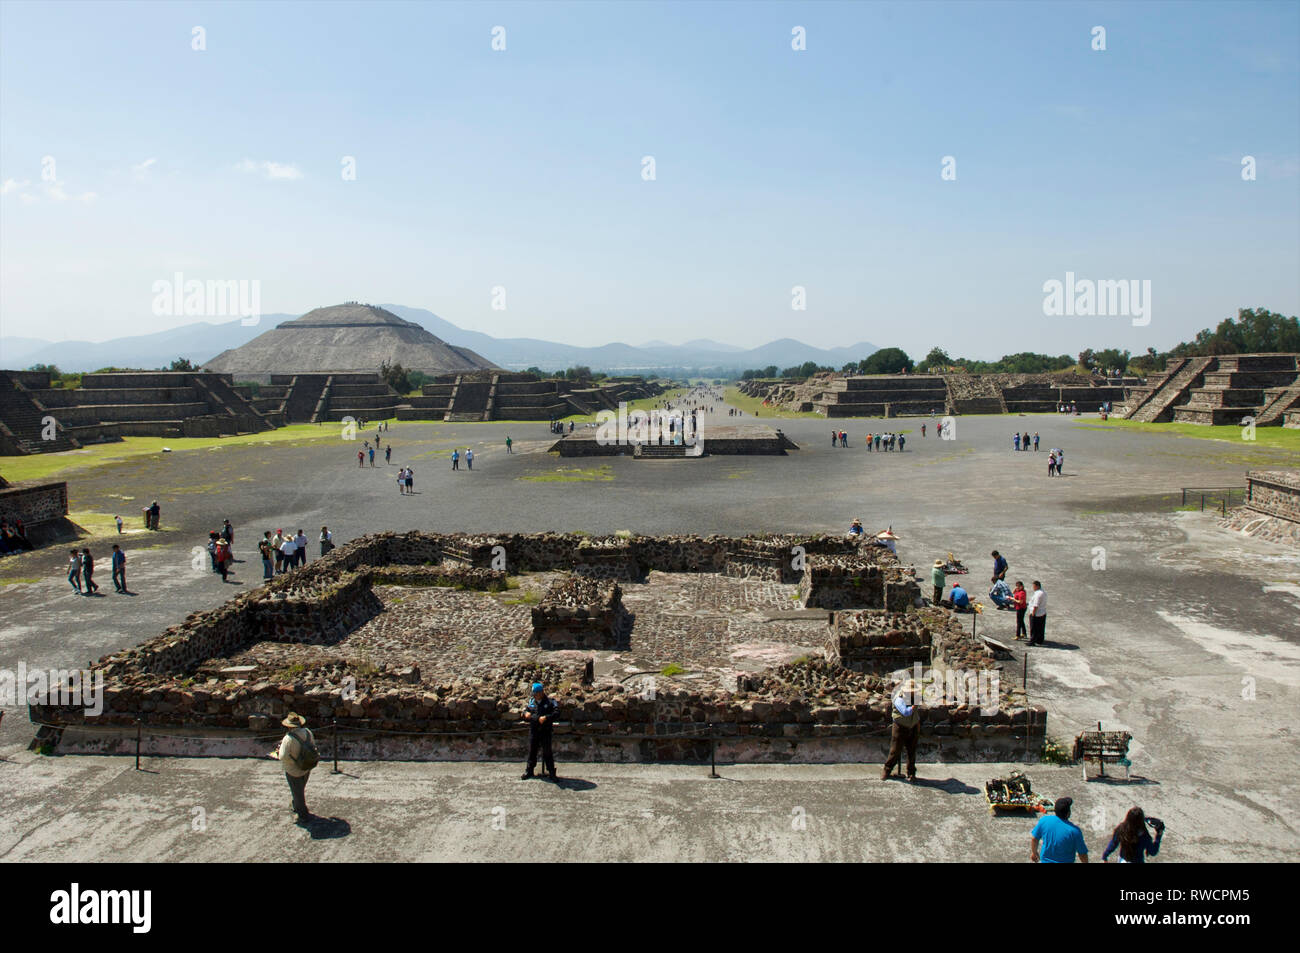 View of tourists on Avenue of the Dead and Pyramid of the Sun and at Teotihuacan, Mexico - Stock Image